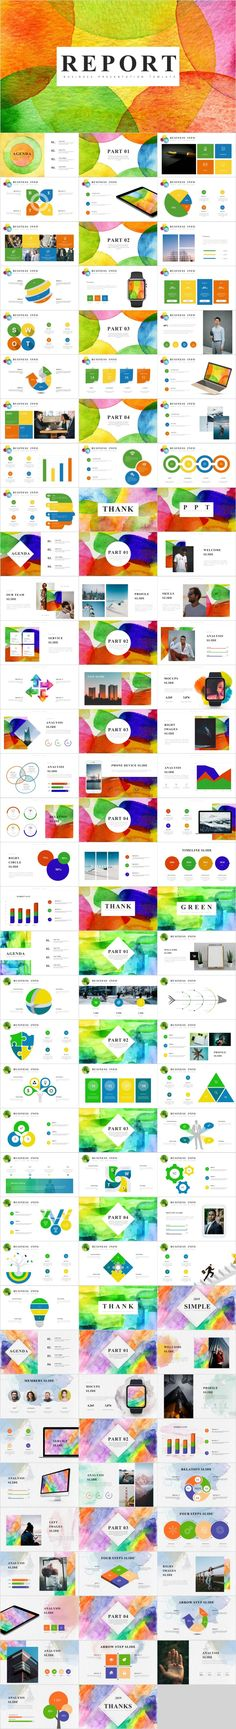 1 colorful business report in 1 colorful business report PowerPoint--- yellow Business annual PowerPoint Presentations template design business professional powerpoint templates Presentation Software, Business Powerpoint Presentation, Presentation Design, Powerpoint Presentations, Infographic Powerpoint, Professional Presentation, Simple Powerpoint Templates, Professional Powerpoint Templates, Keynote Template